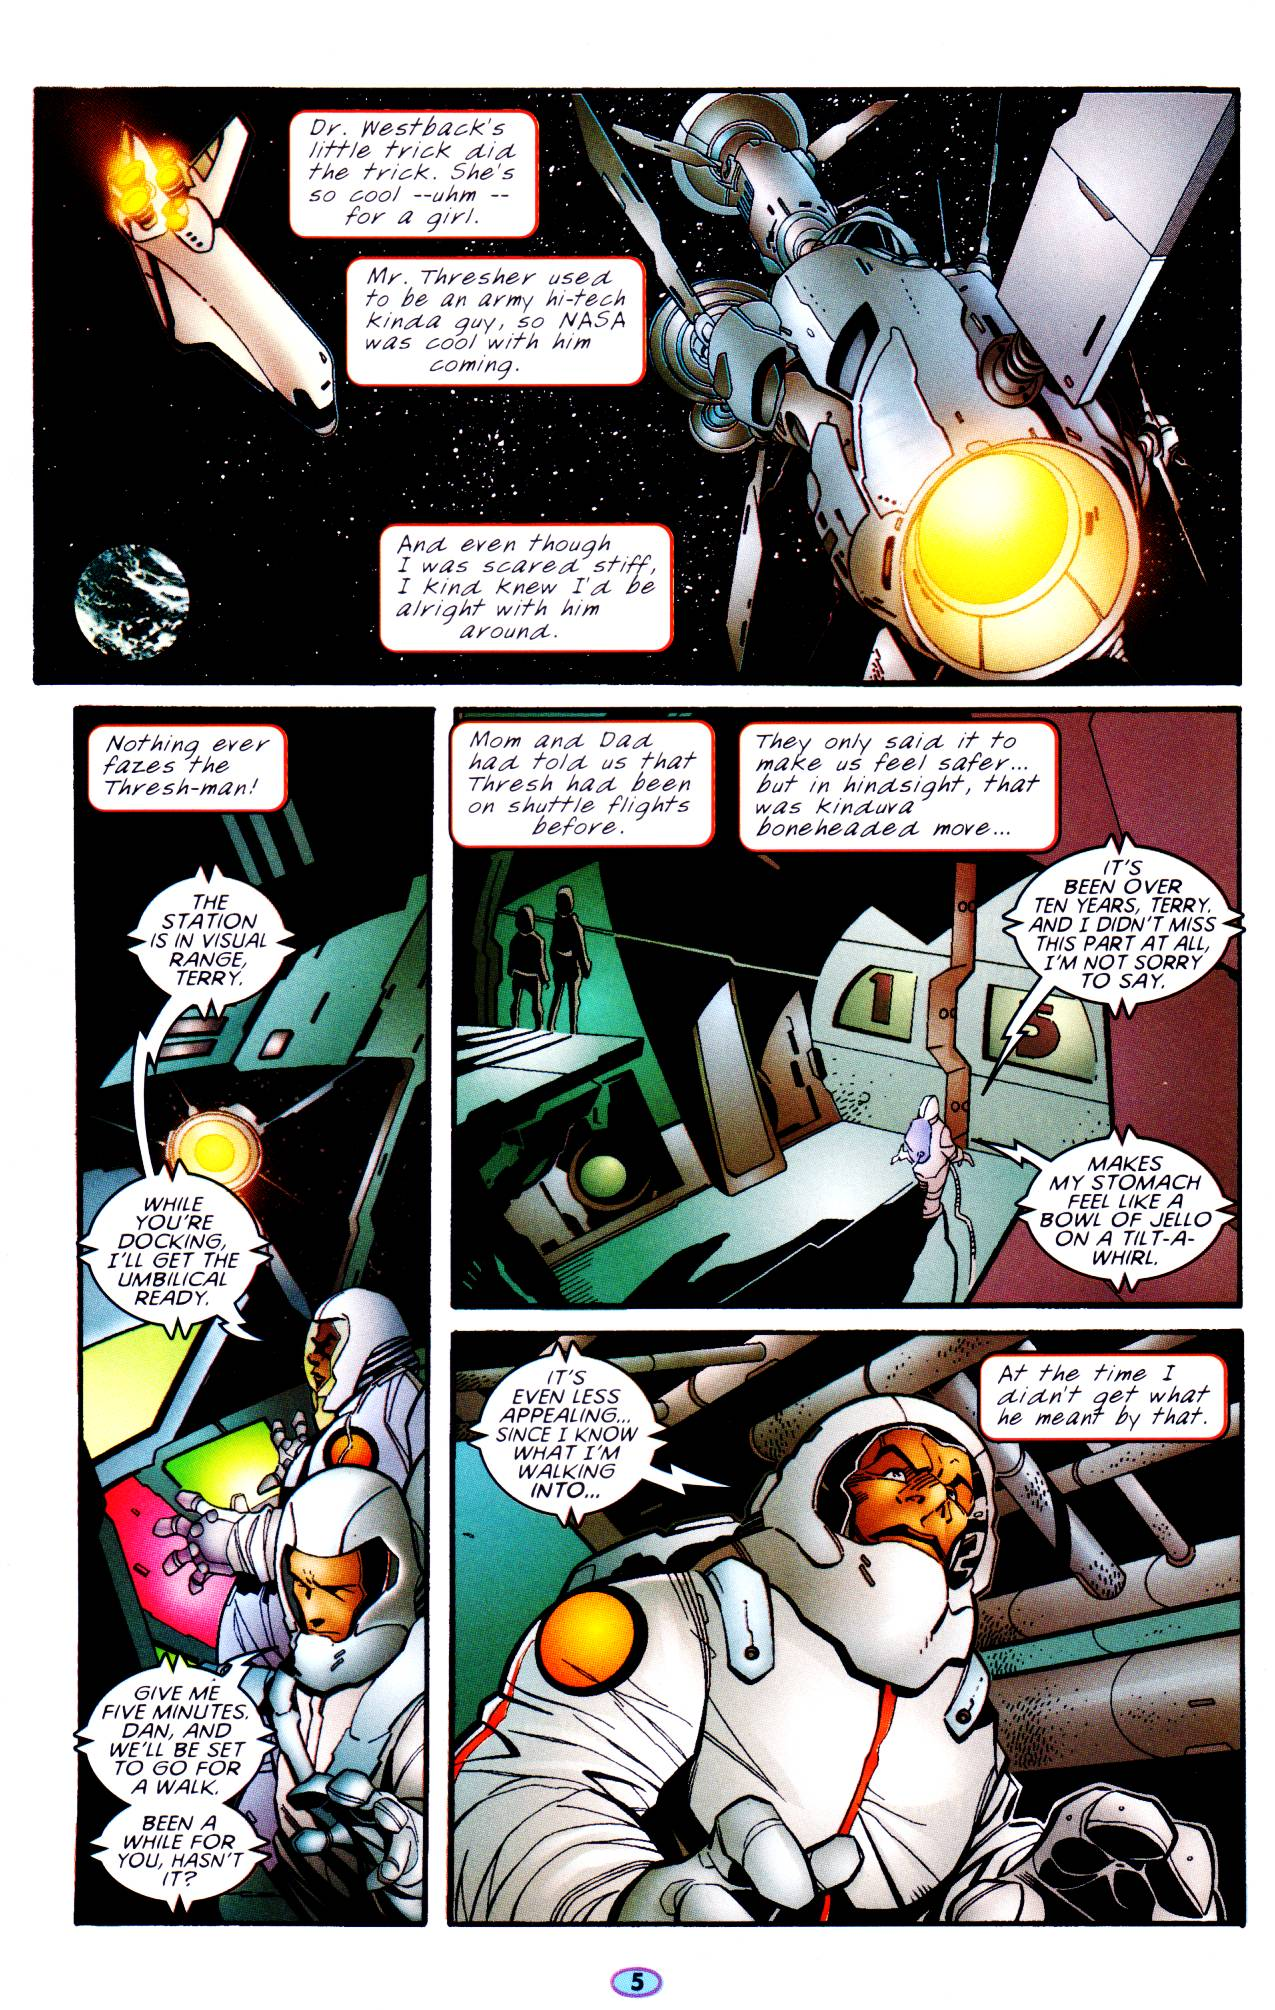 Read online Troublemakers comic -  Issue #6 - 6